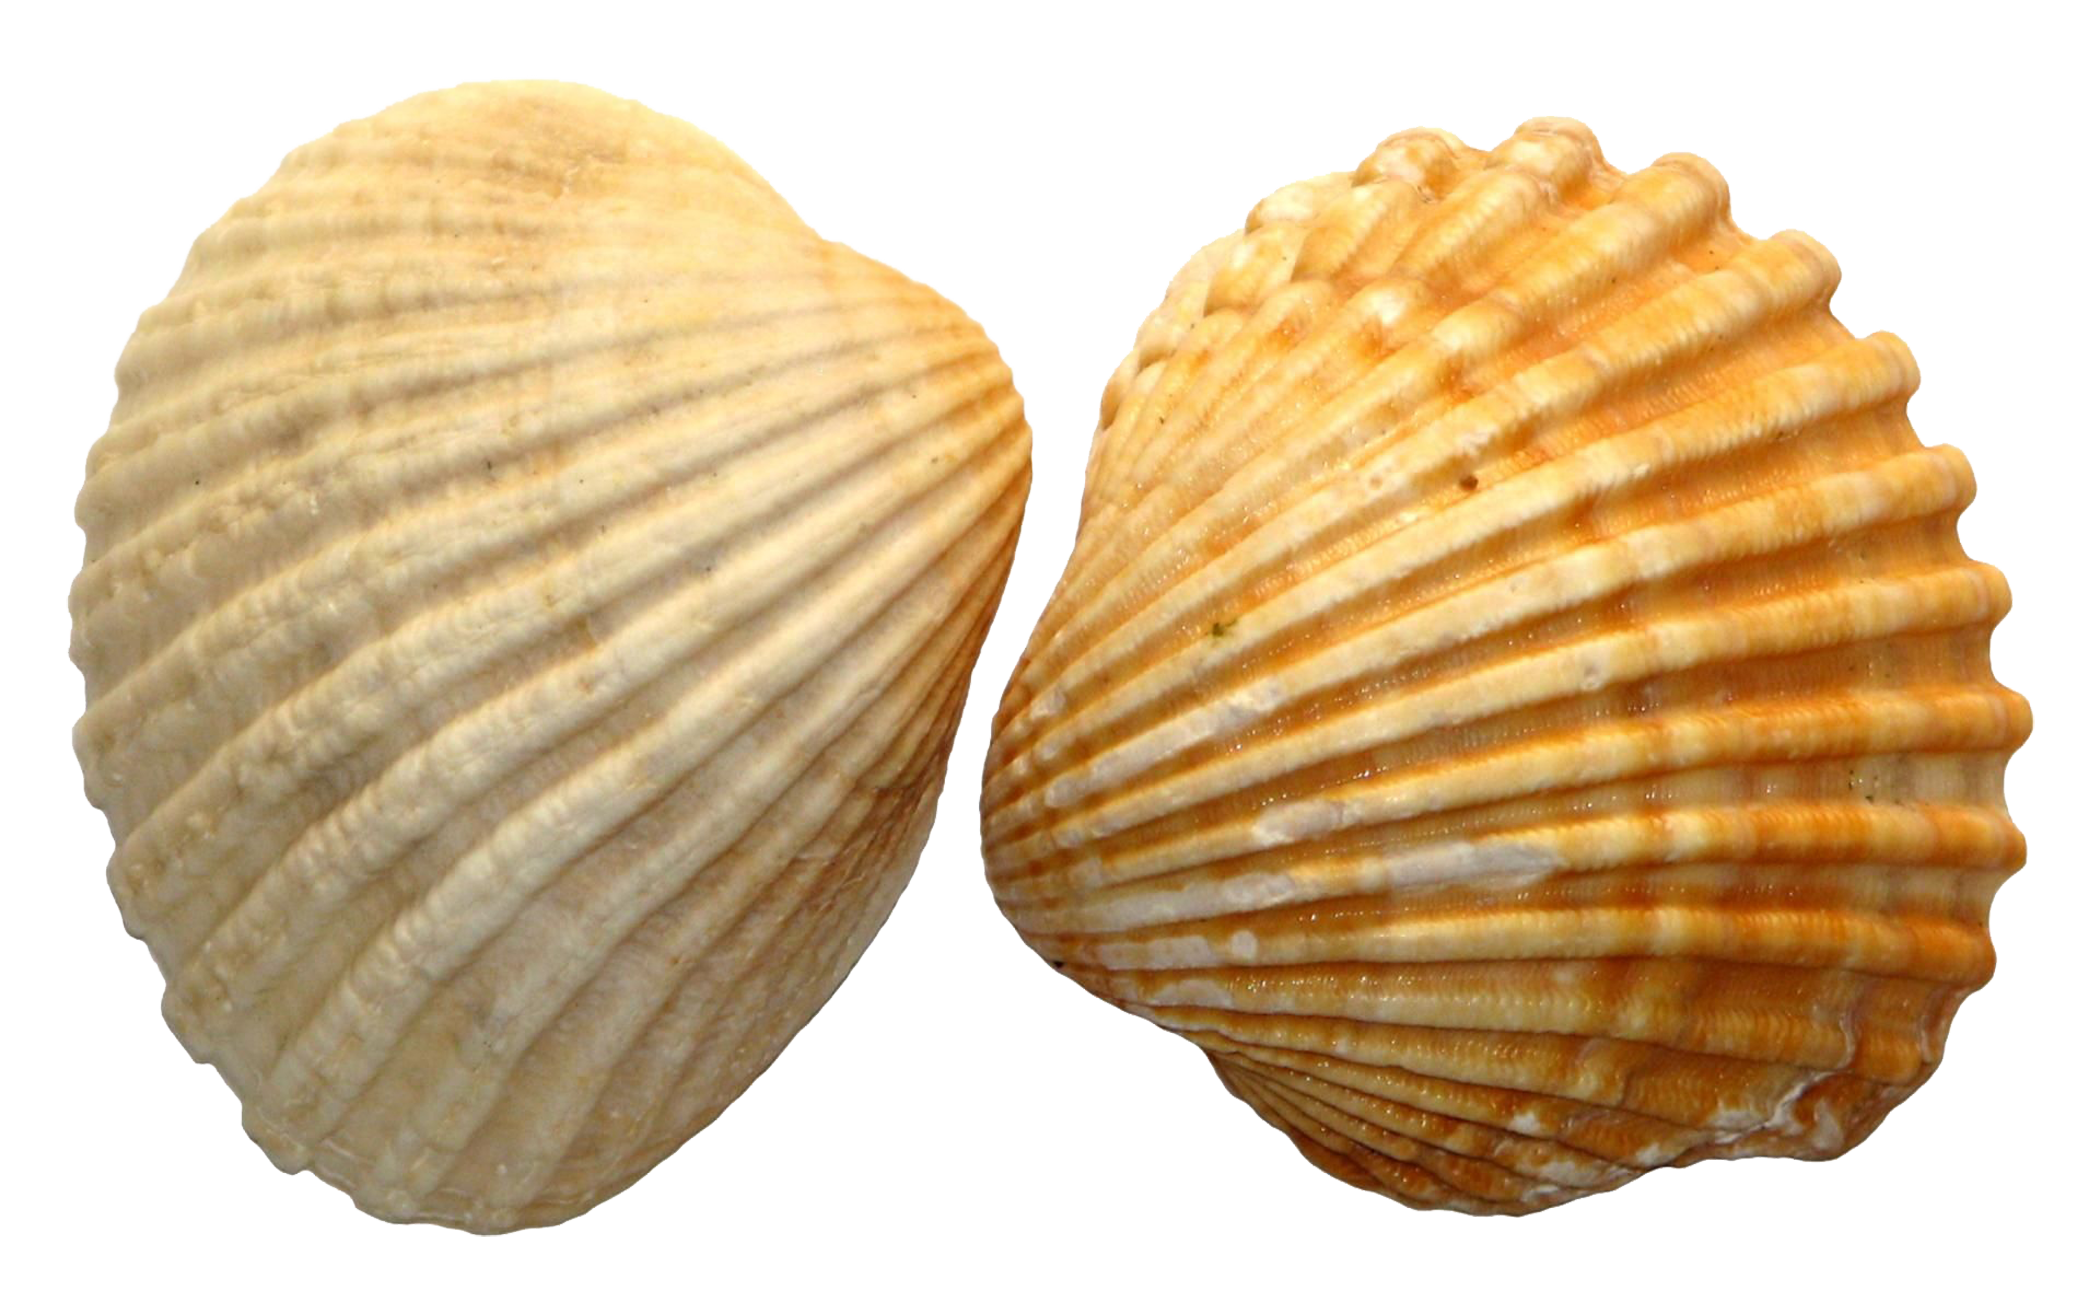 Seashell Royal Dutch Shell Clip art.